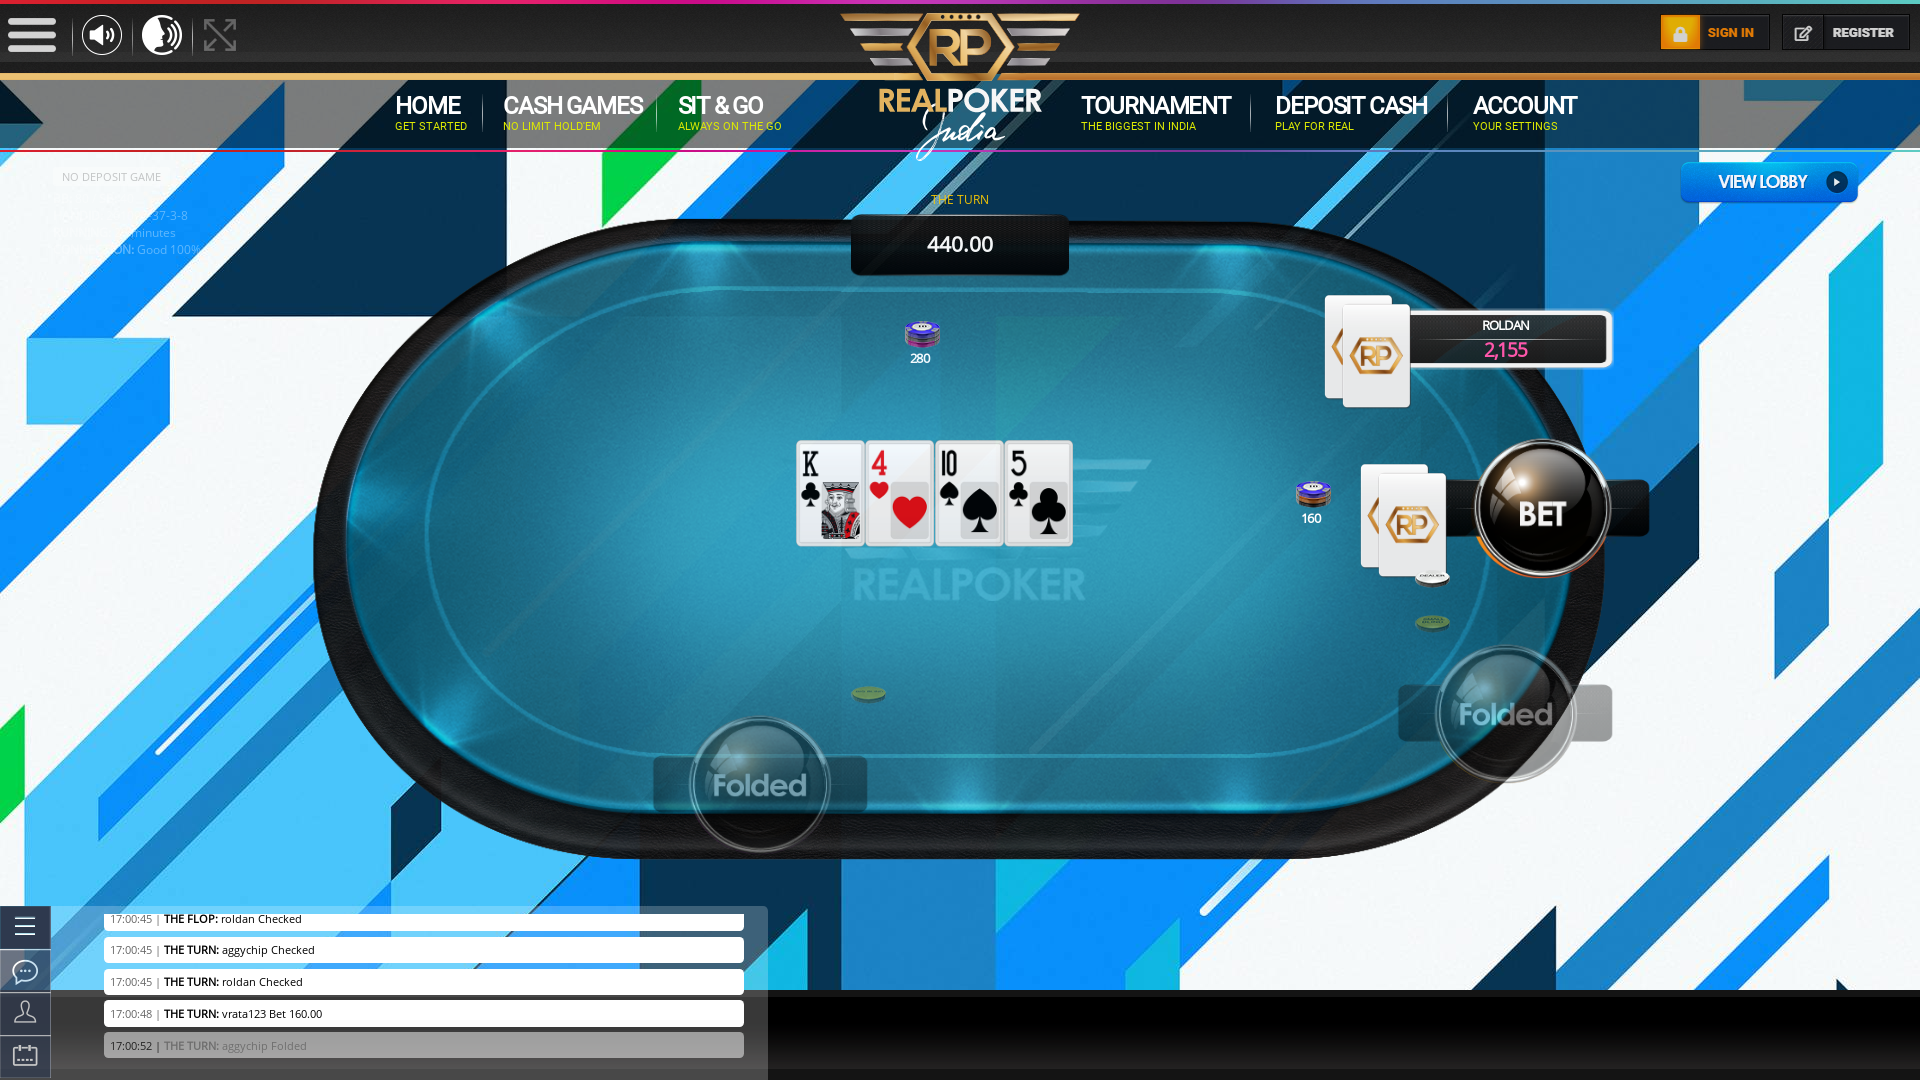 Real Indian poker on a 10 player table in the 29th minute of the game